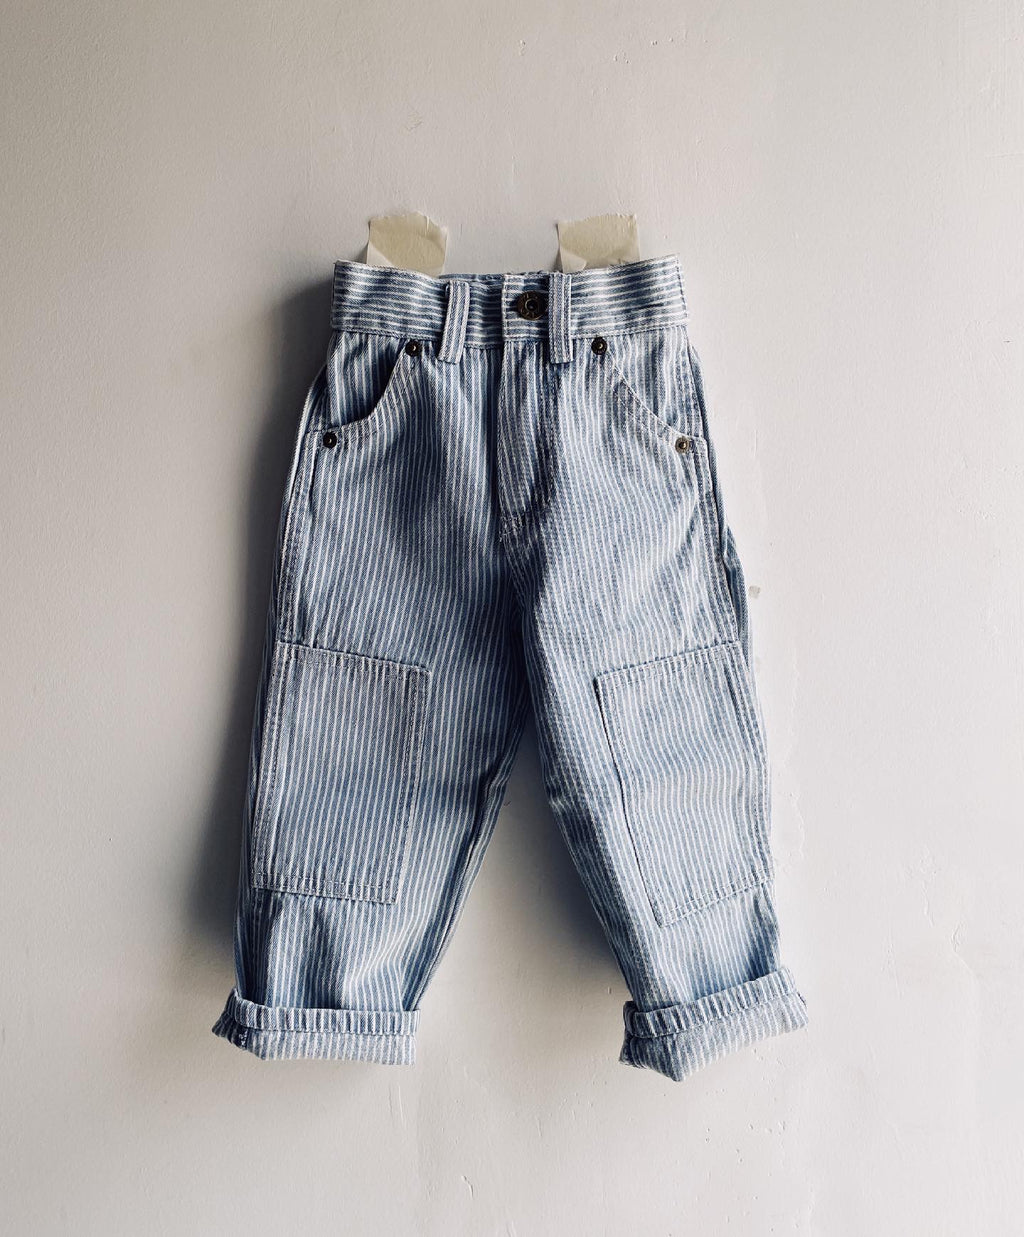 The Knee Patch Jean Washed Railroad